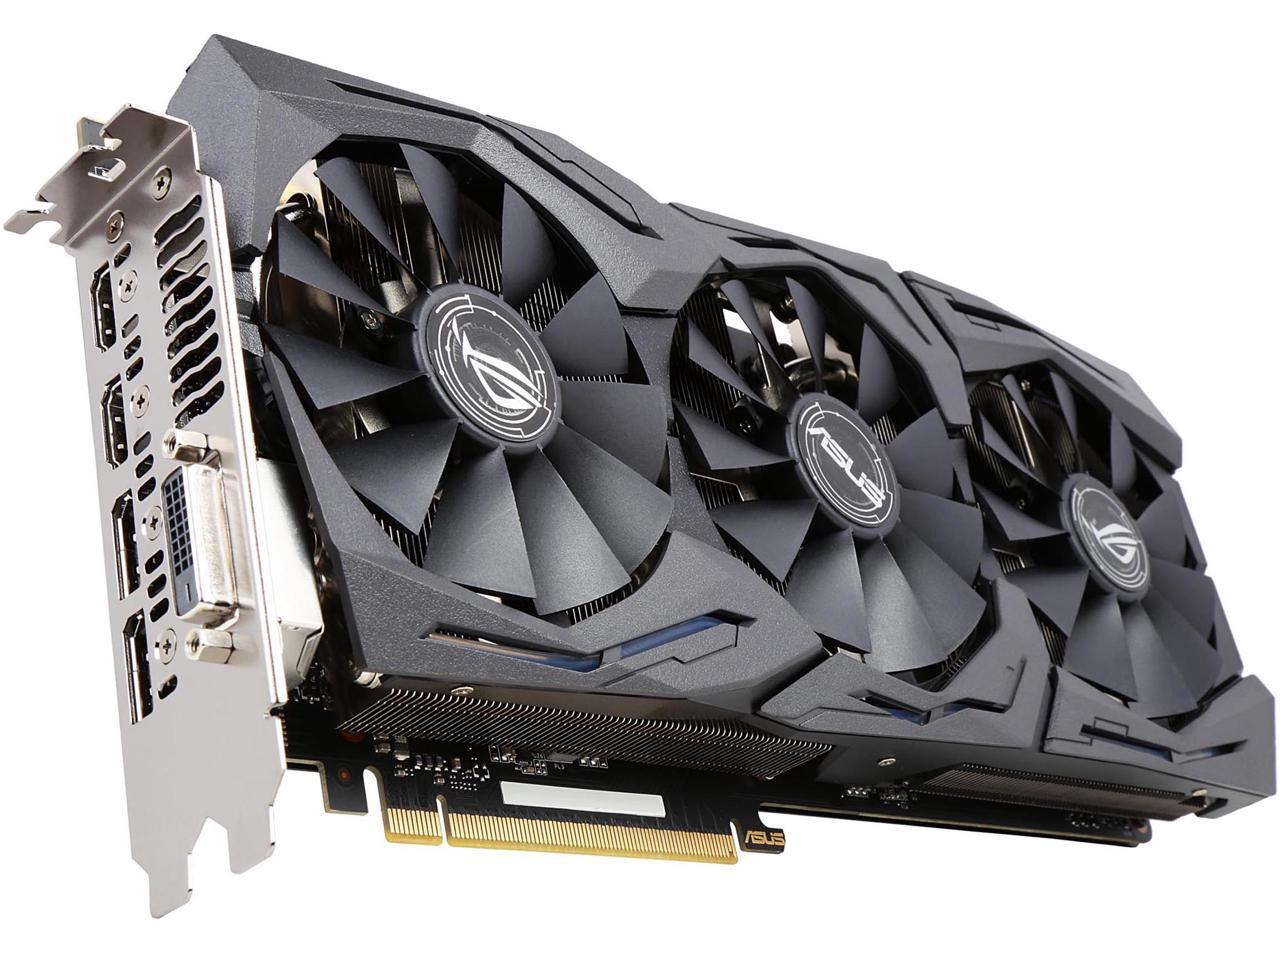 Asus Rog Geforce Gtx 1080 Strix Gtx1080 A8g Gaming Video Card Already In The Fan Base Pdf Mod Note How To Include Pictures